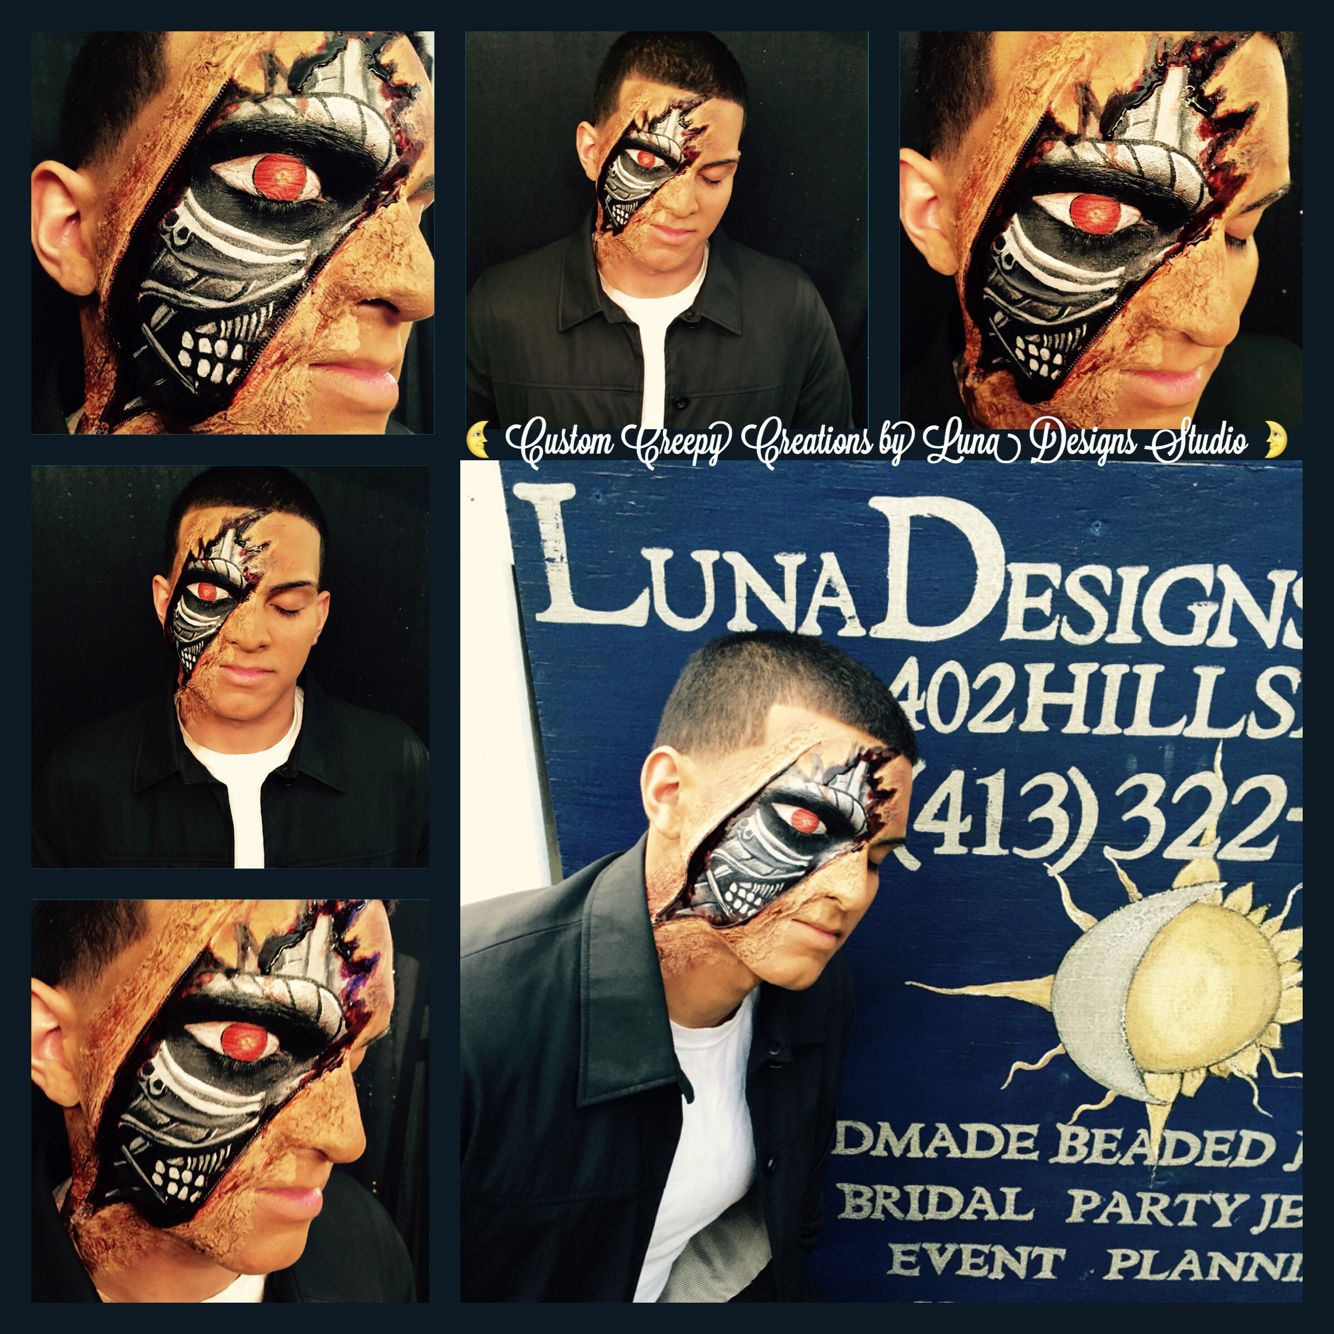 Custom Creepy Creations and Extreme Body Art by Luna